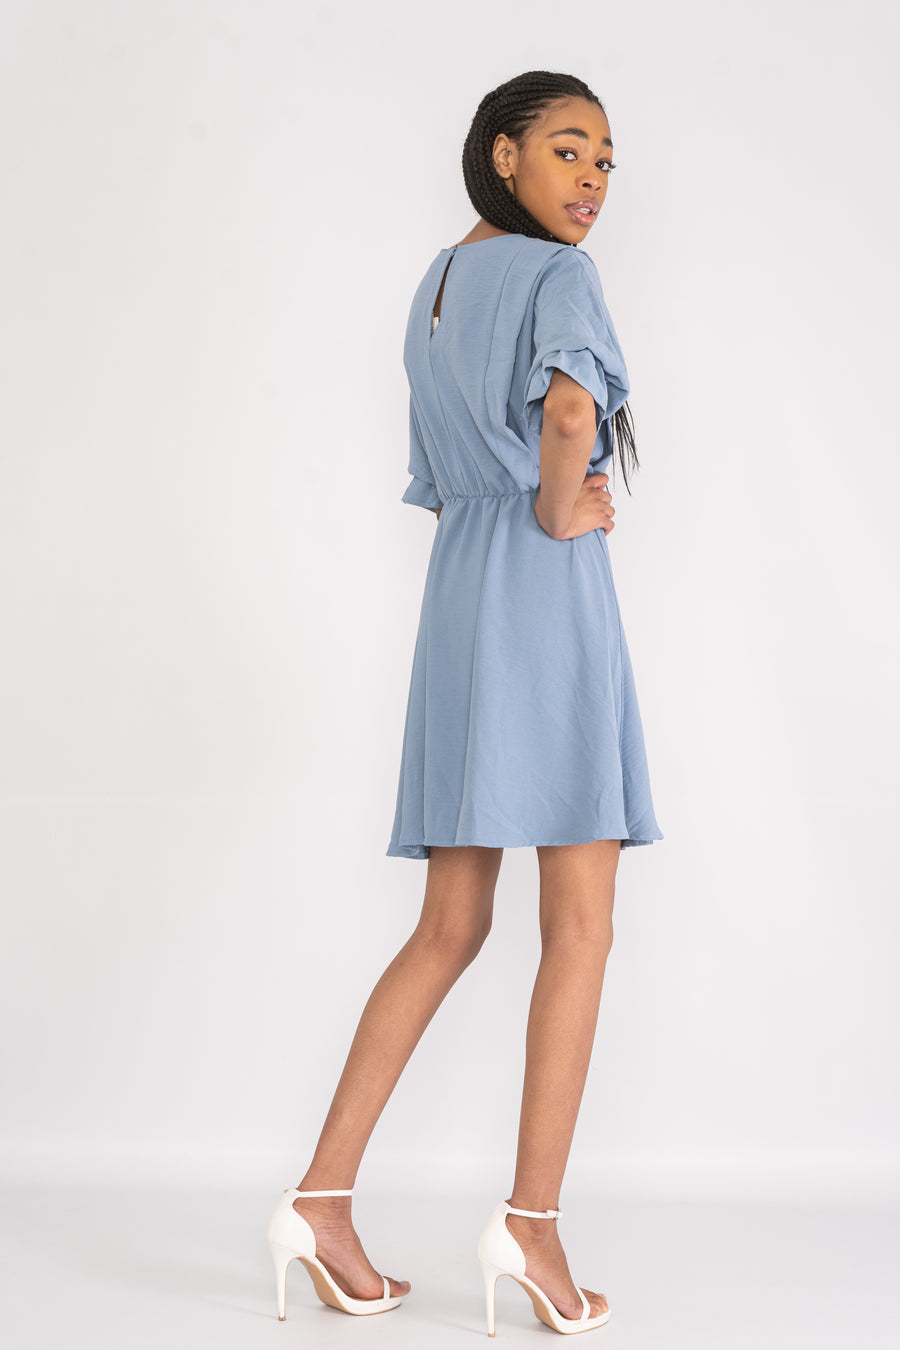 Tunic dress with bell sleeves.